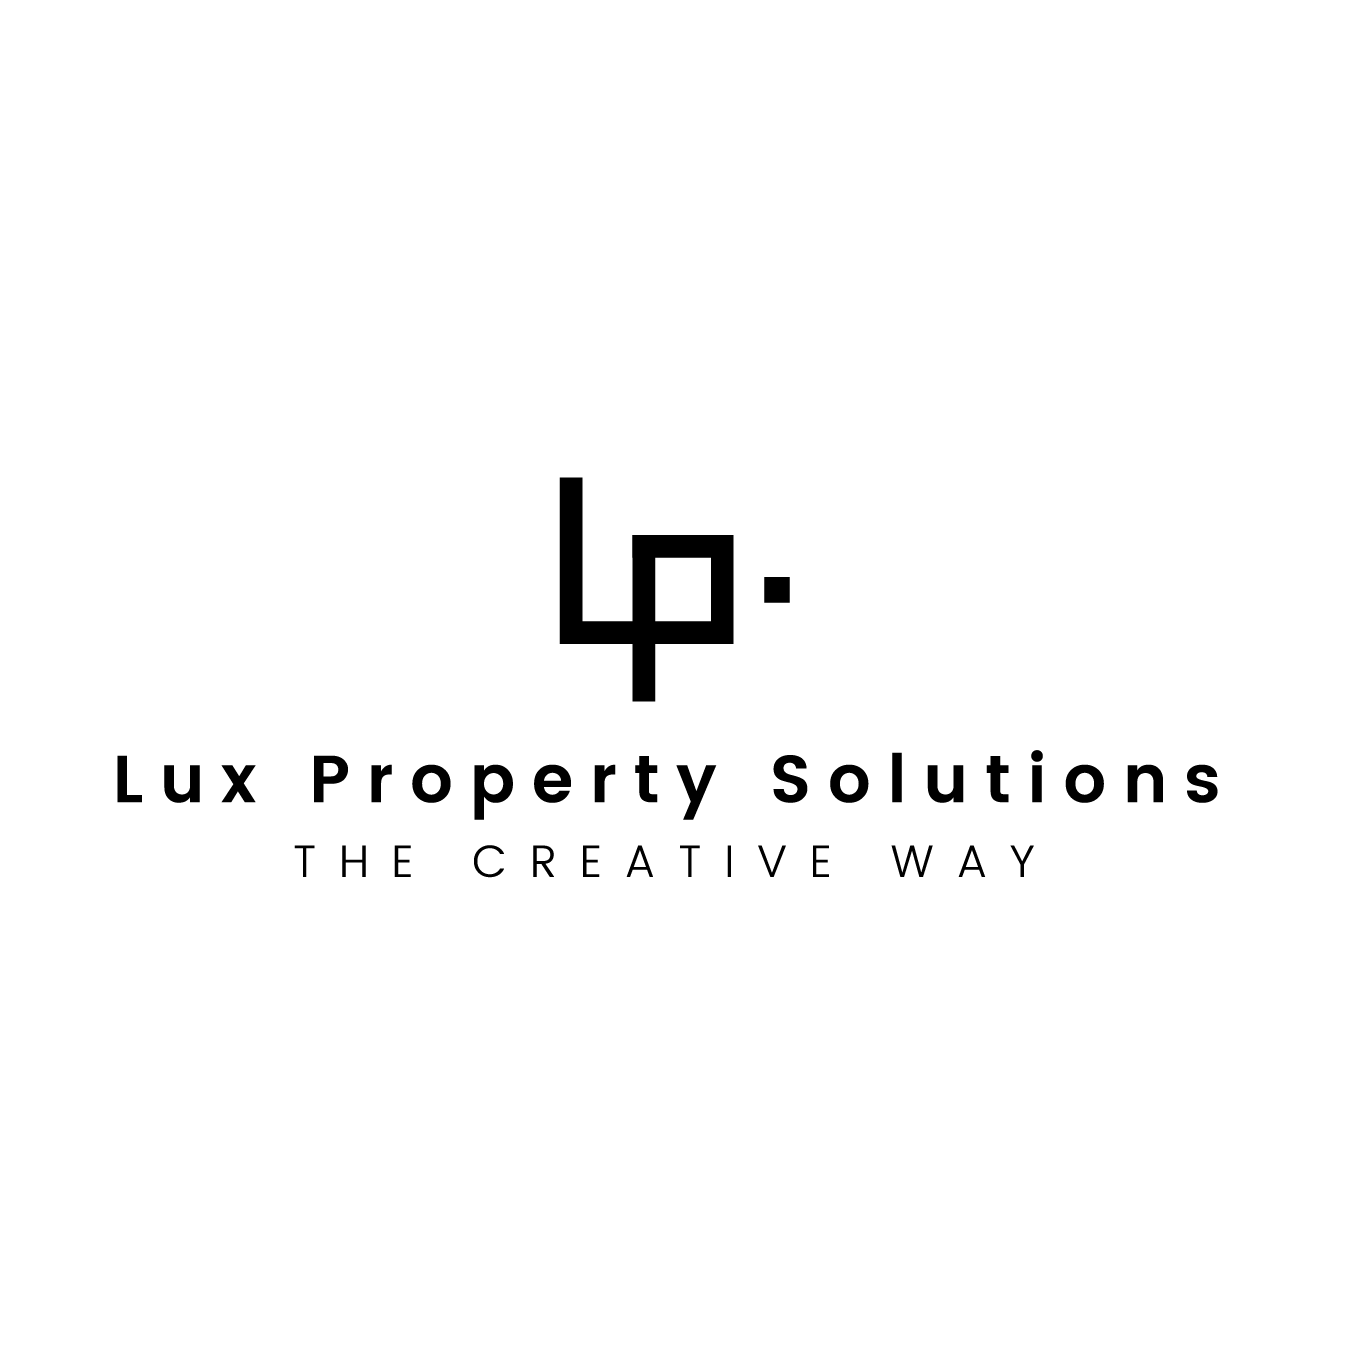 Lux Property Solutions LLC